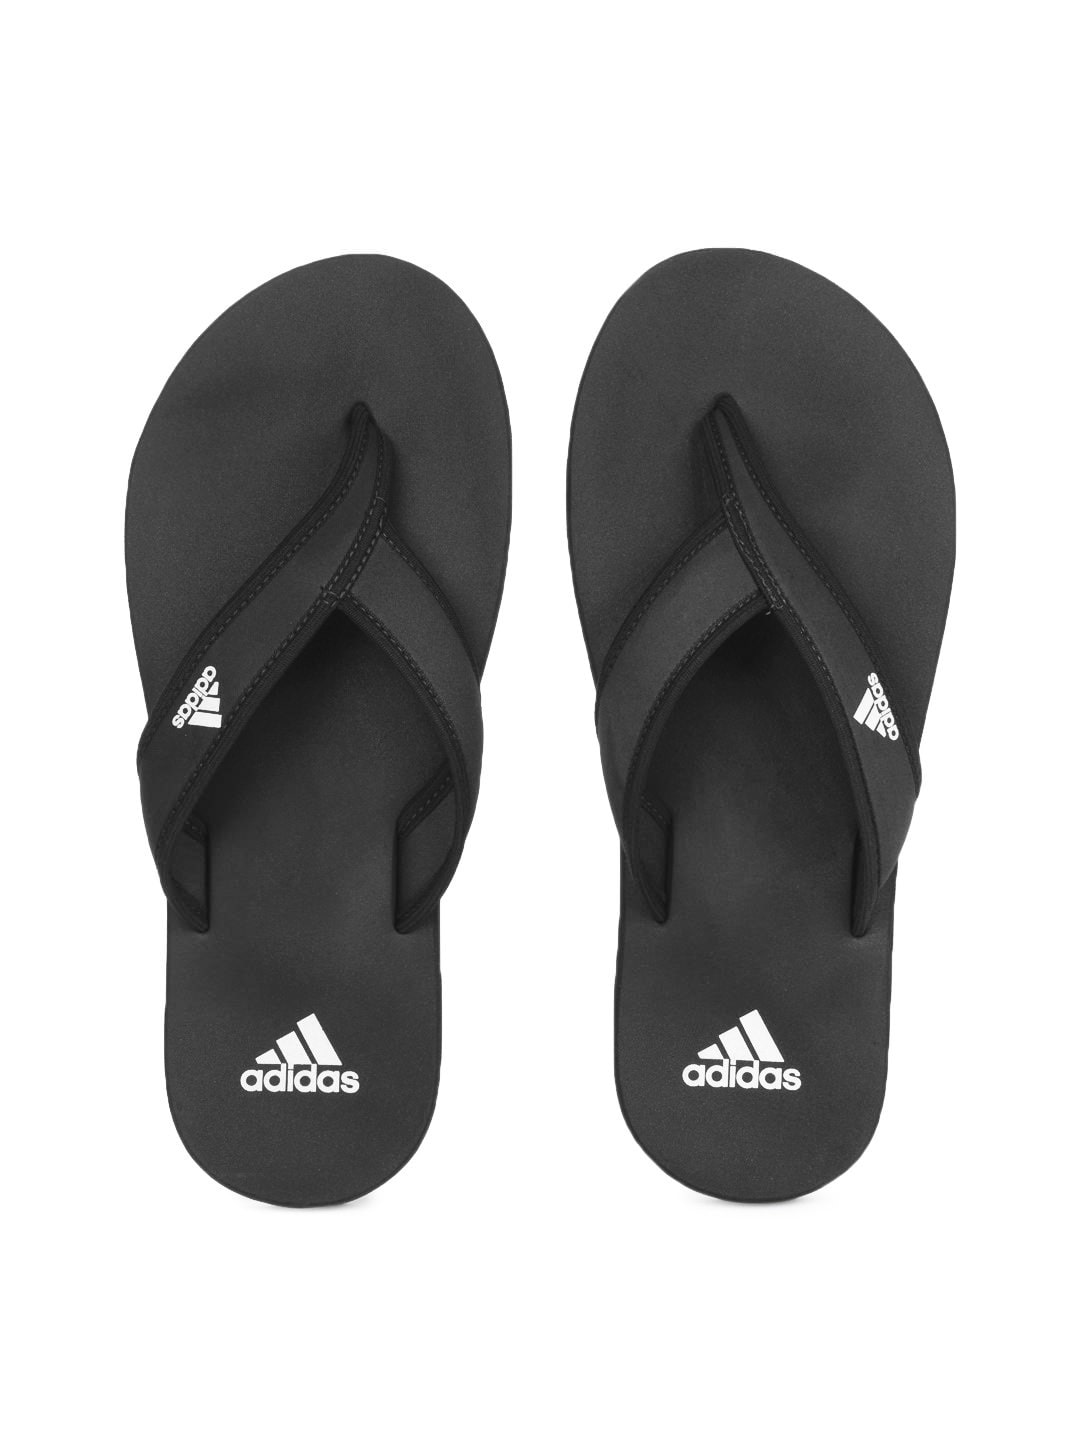 adidas slippers for men price